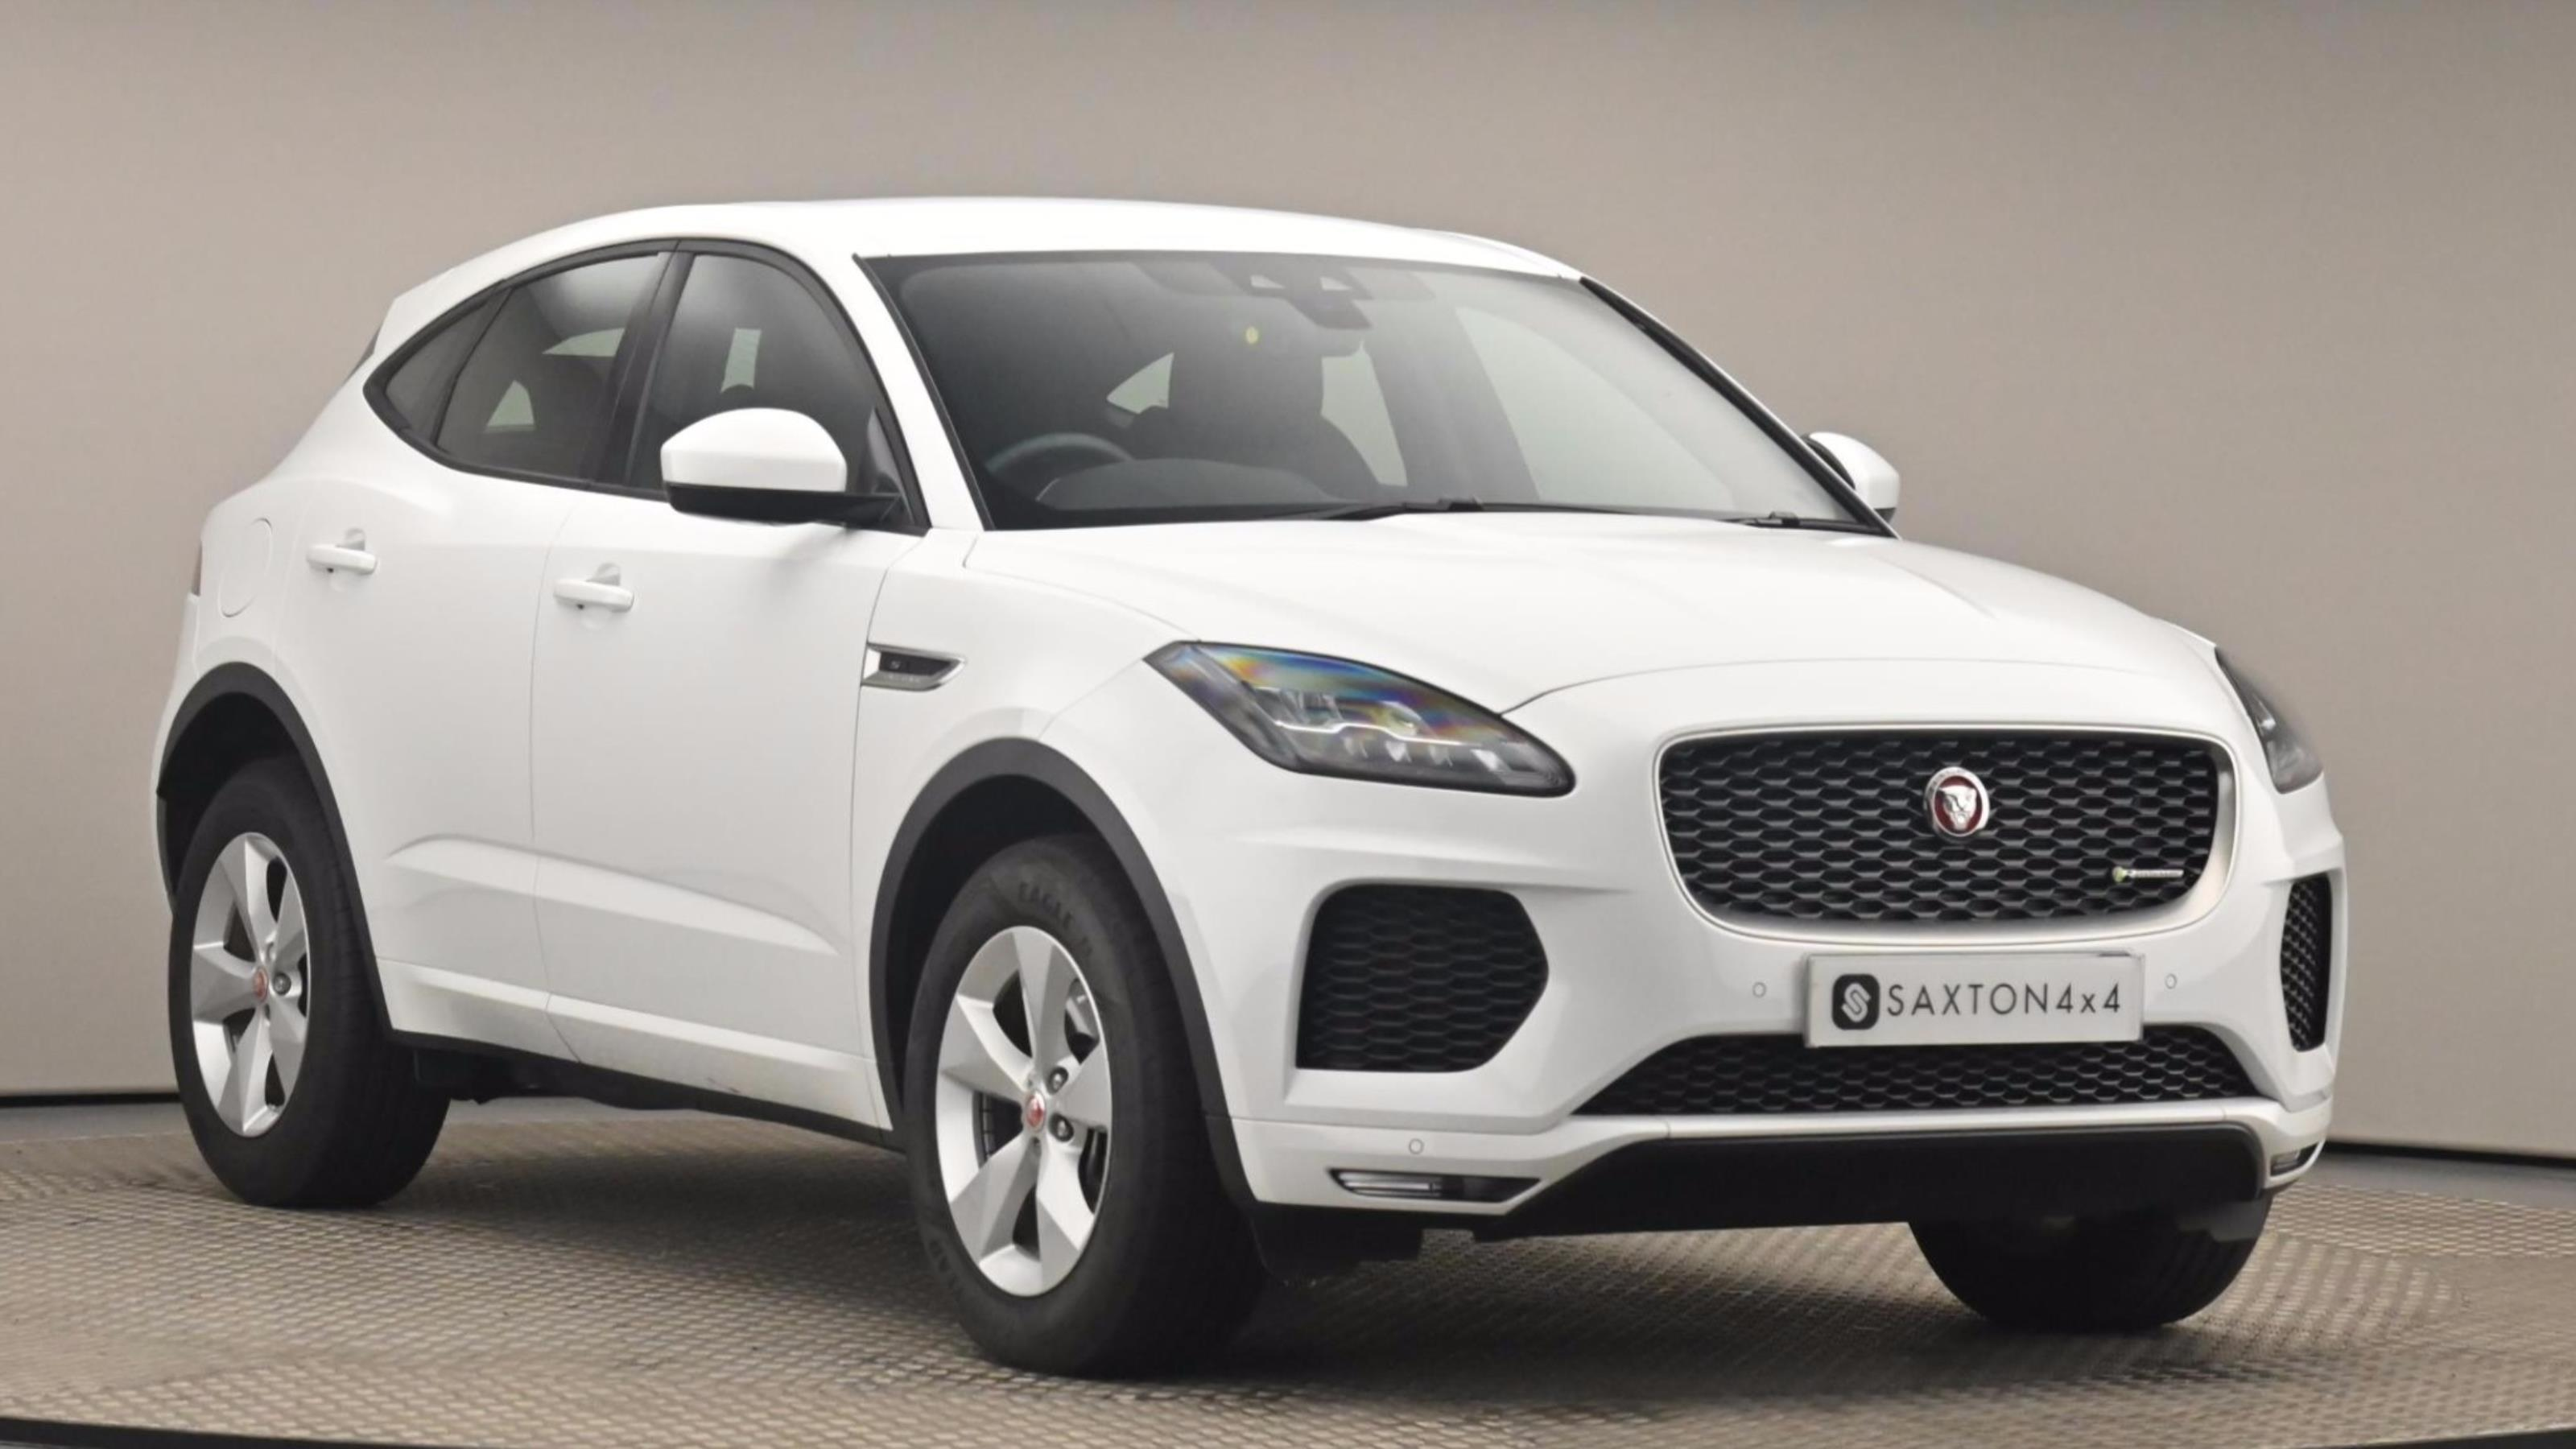 Used 2018 Jaguar E-PACE 2.0 R-Dynamic S 5dr Auto White at Saxton4x4